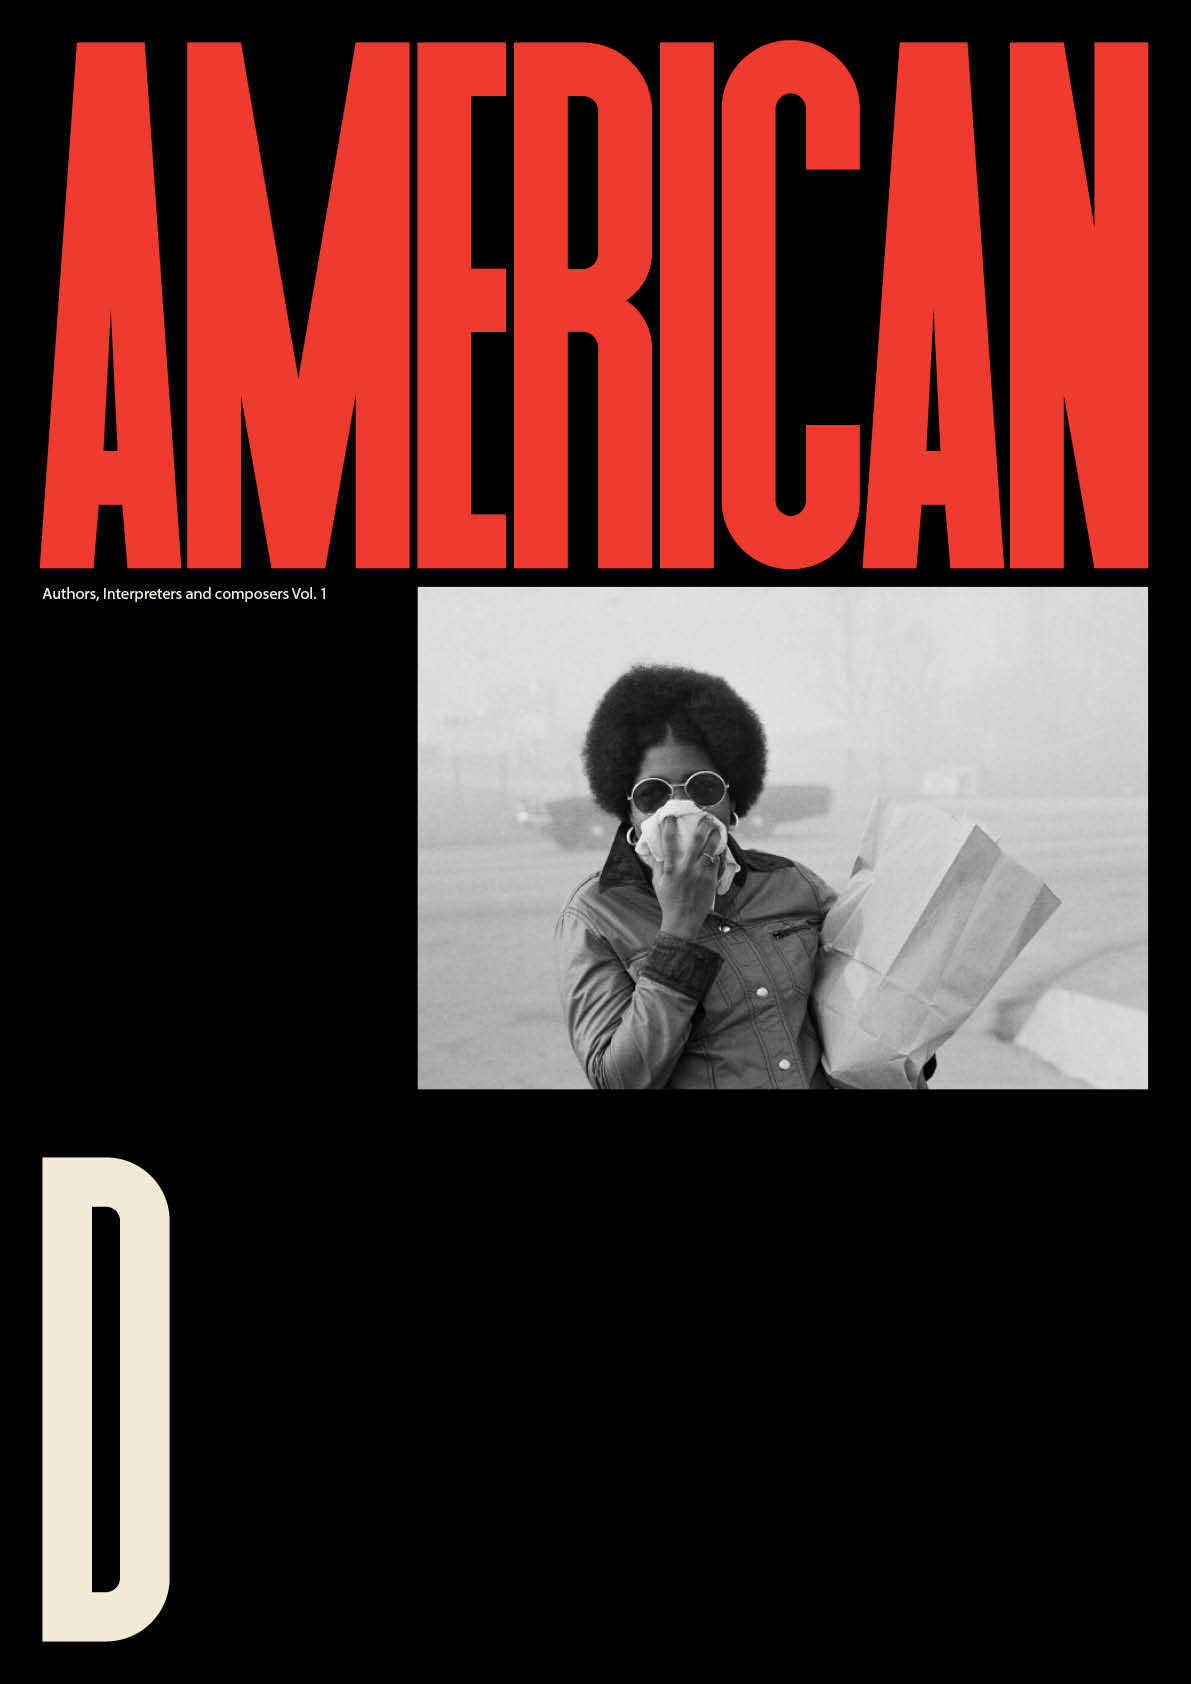 AMERICAN D COVER